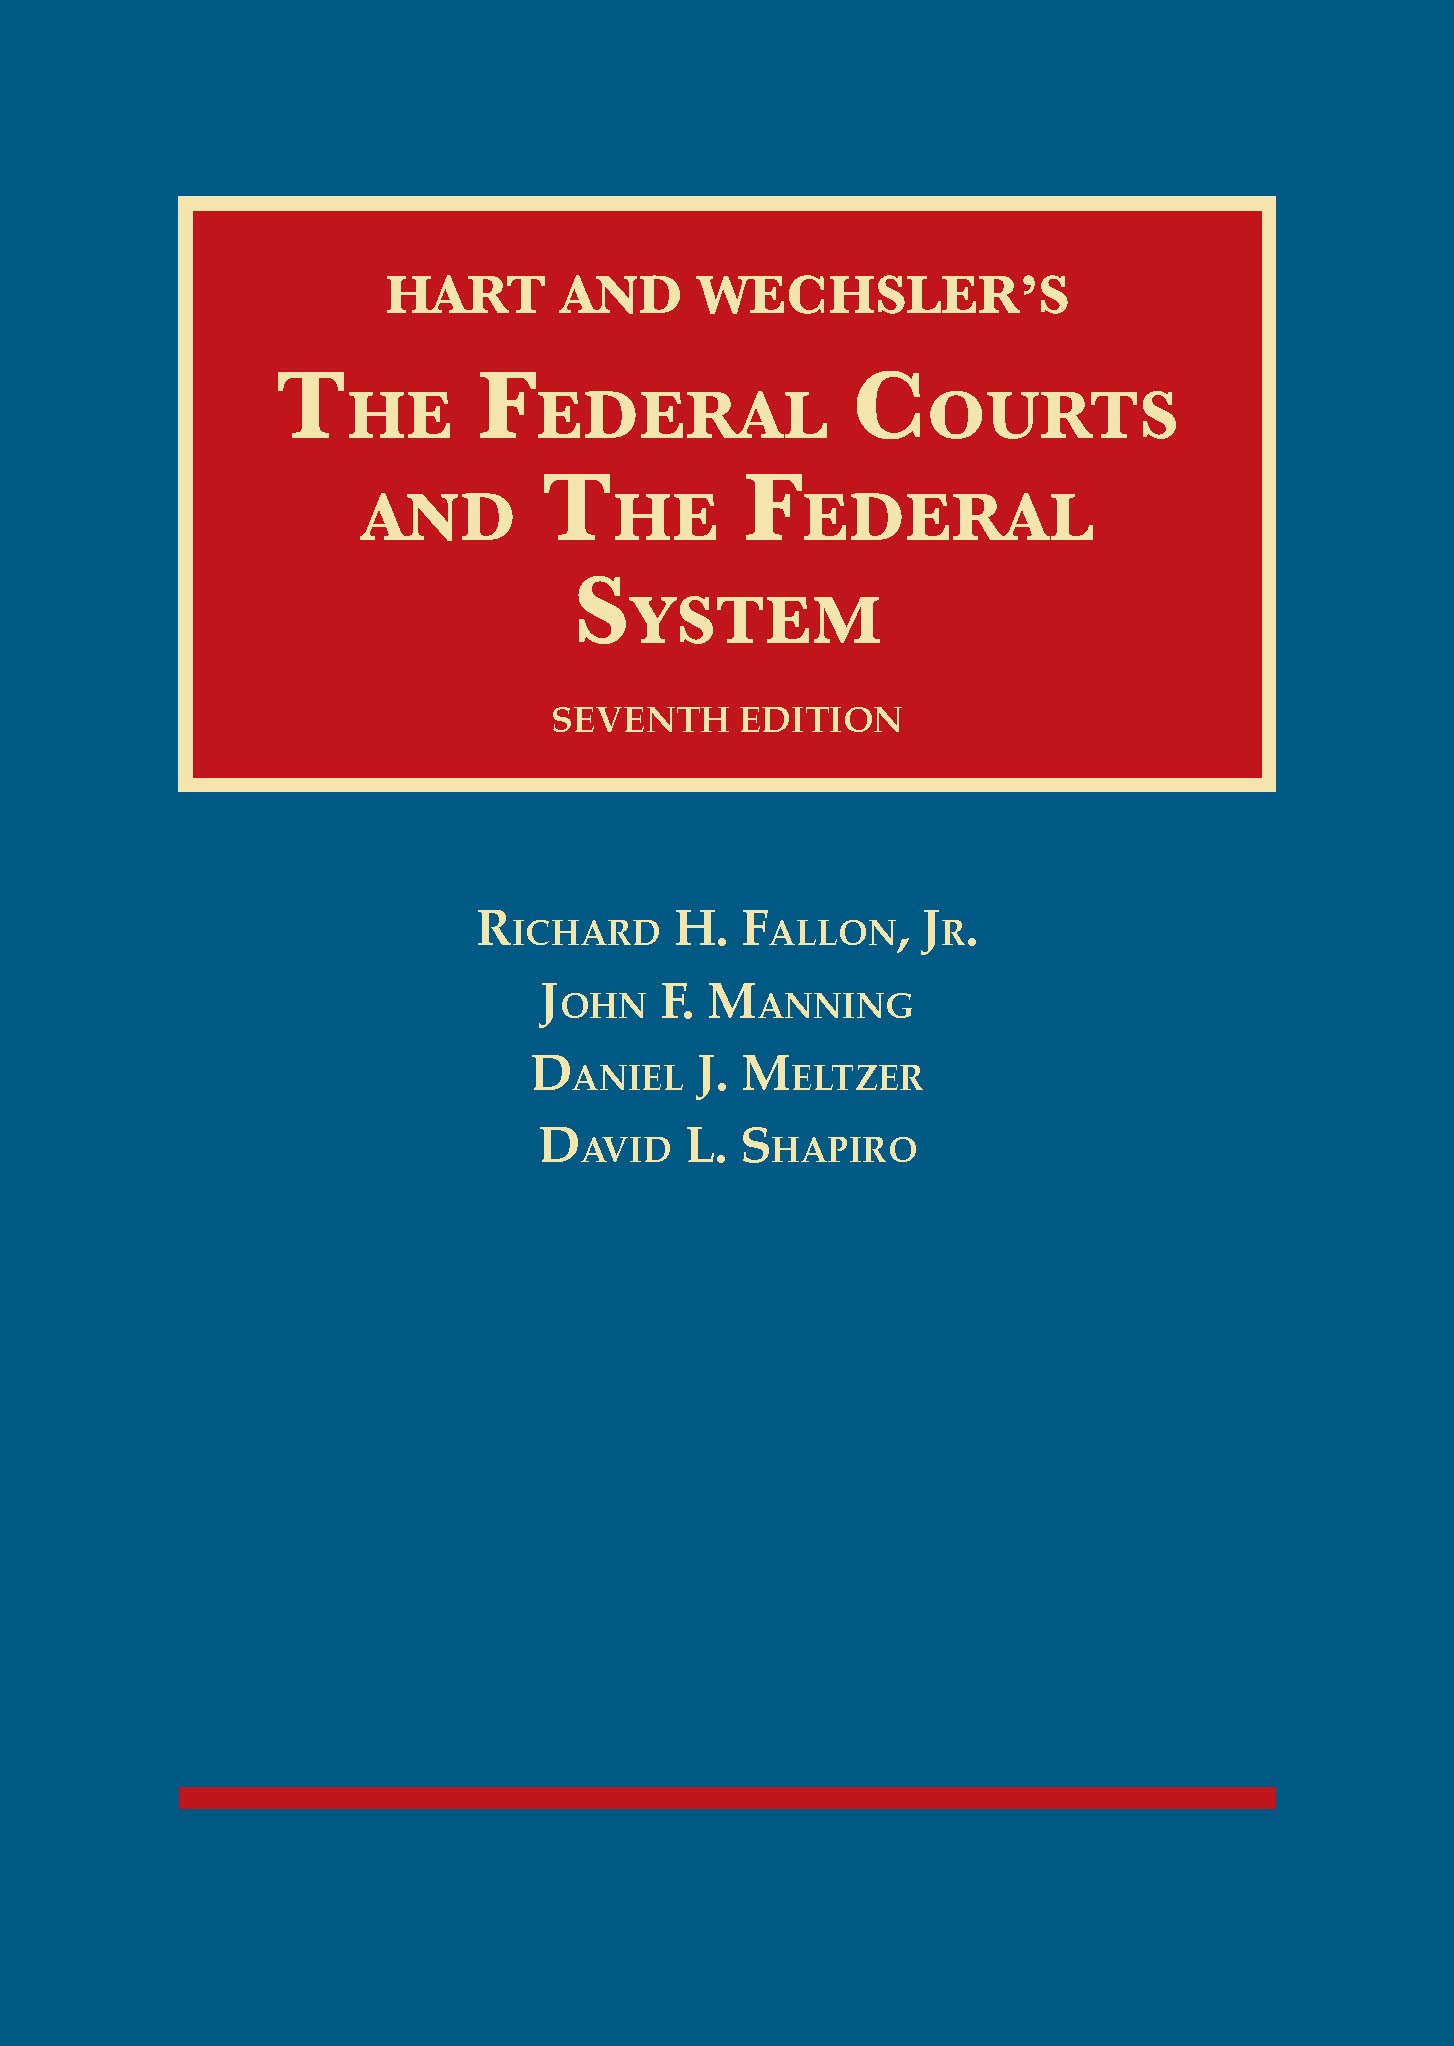 The Federal Courts and The Federal System (University Casebook Series) by Foundation Press